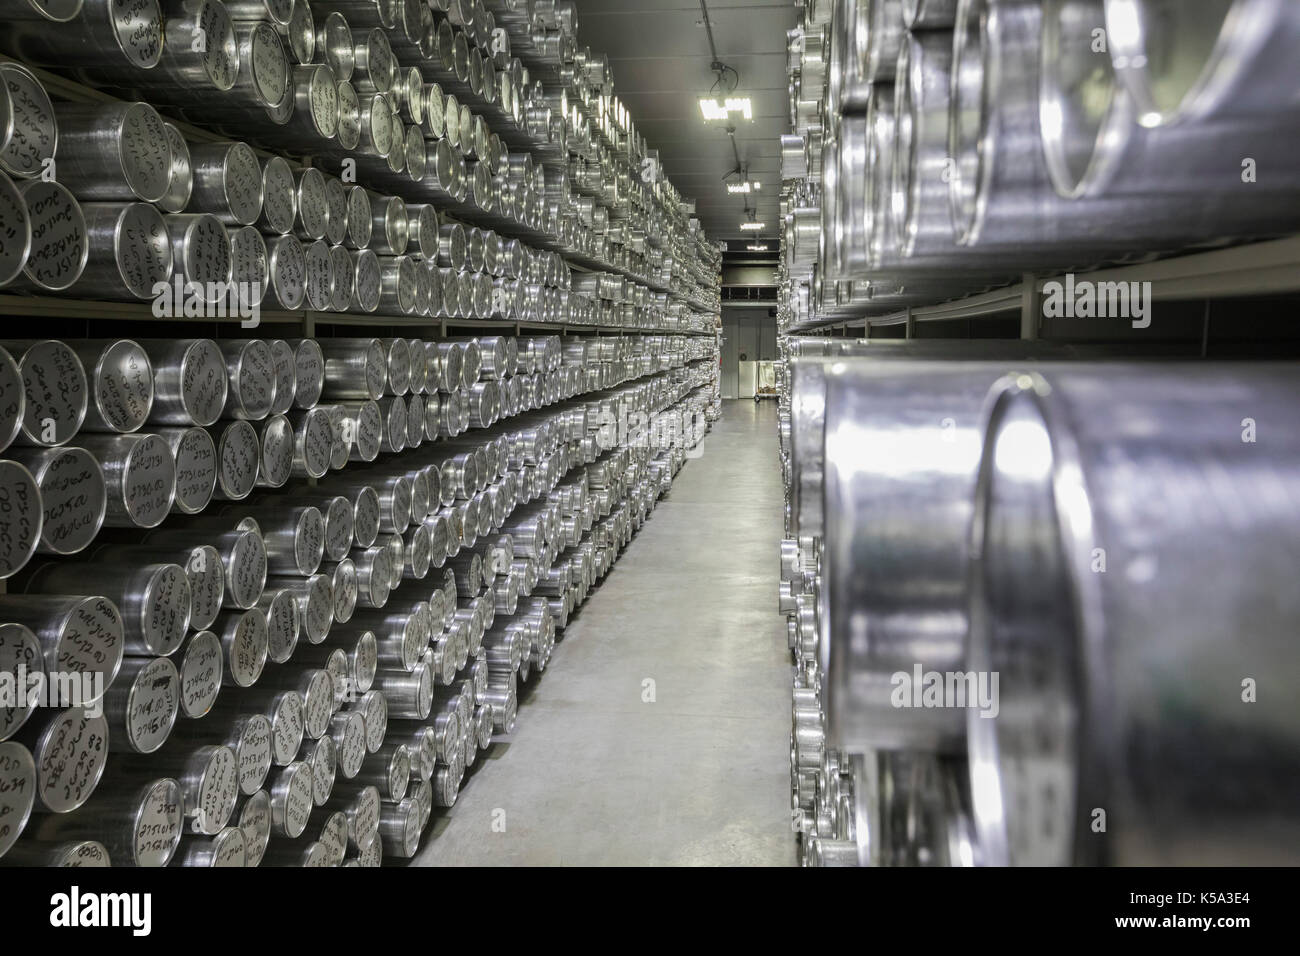 Denver, Colorado - Tubes holding ice cores stored at -36 degrees C (-33 degrees F) at the National Ice Core Laboratory. The lab stores 19,000 meters o - Stock Image